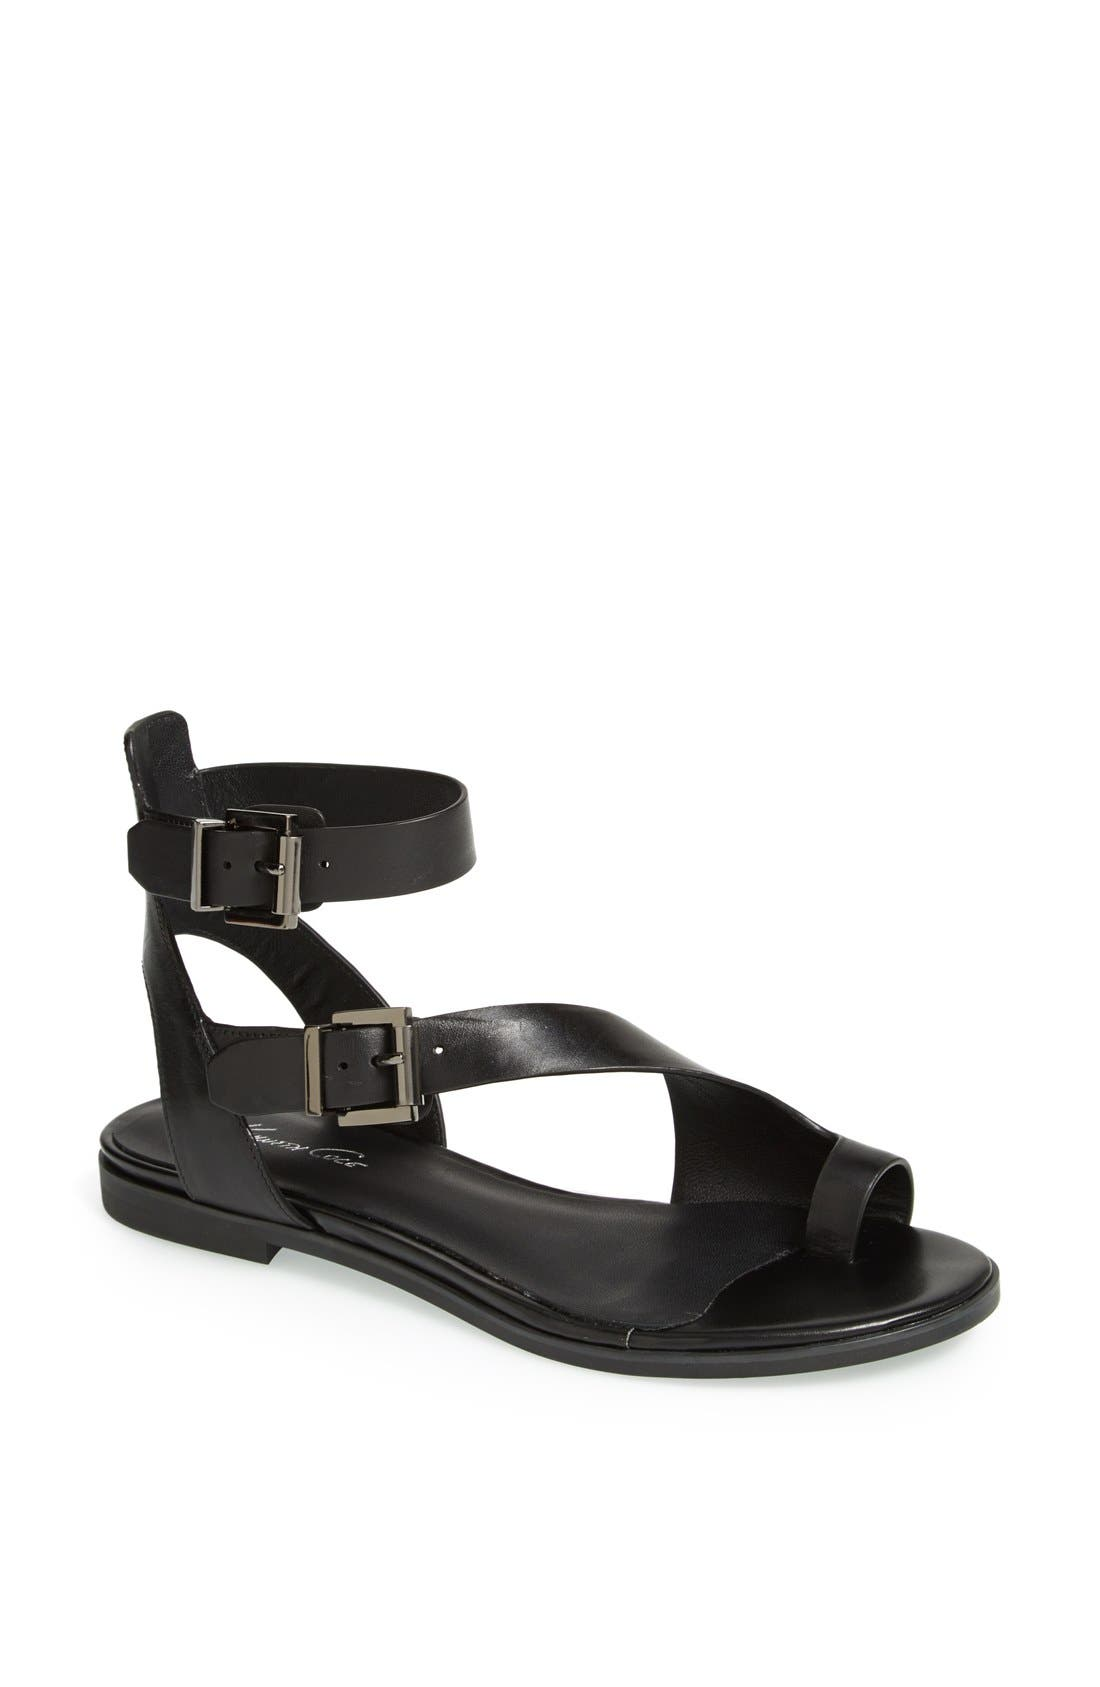 Main Image - Kenneth Cole 'Ditmas' Leather Sandal